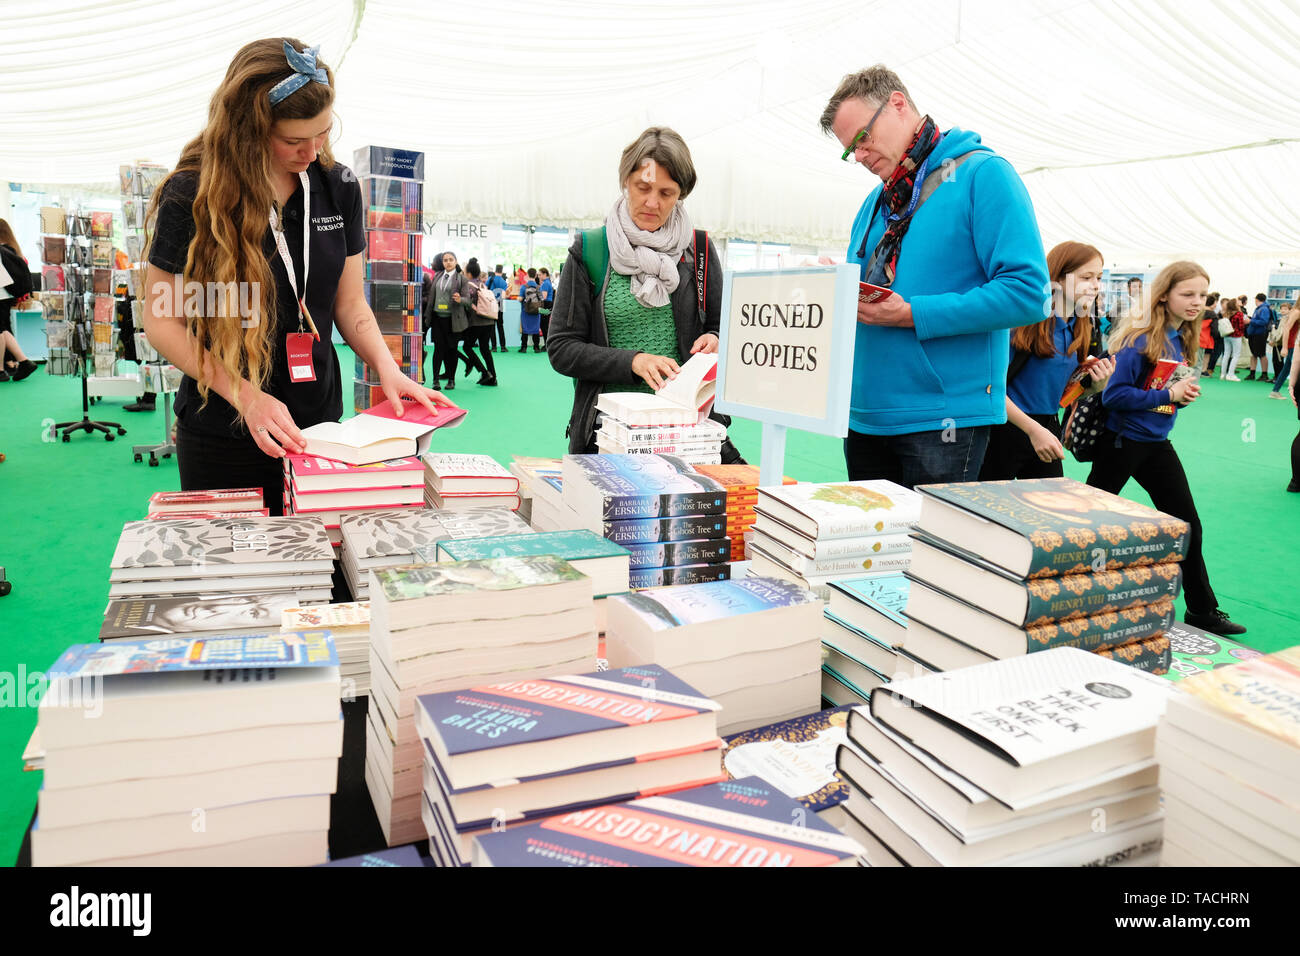 Hay Festival, Hay on Wye, Powys, Wales, UK - Friday 24th May 2019 - Visitors browses the Signed Copies section of books in the Festival bookshop on the second day of this years Hay Festival - Credit: Steven May/Alamy Live News - Stock Image